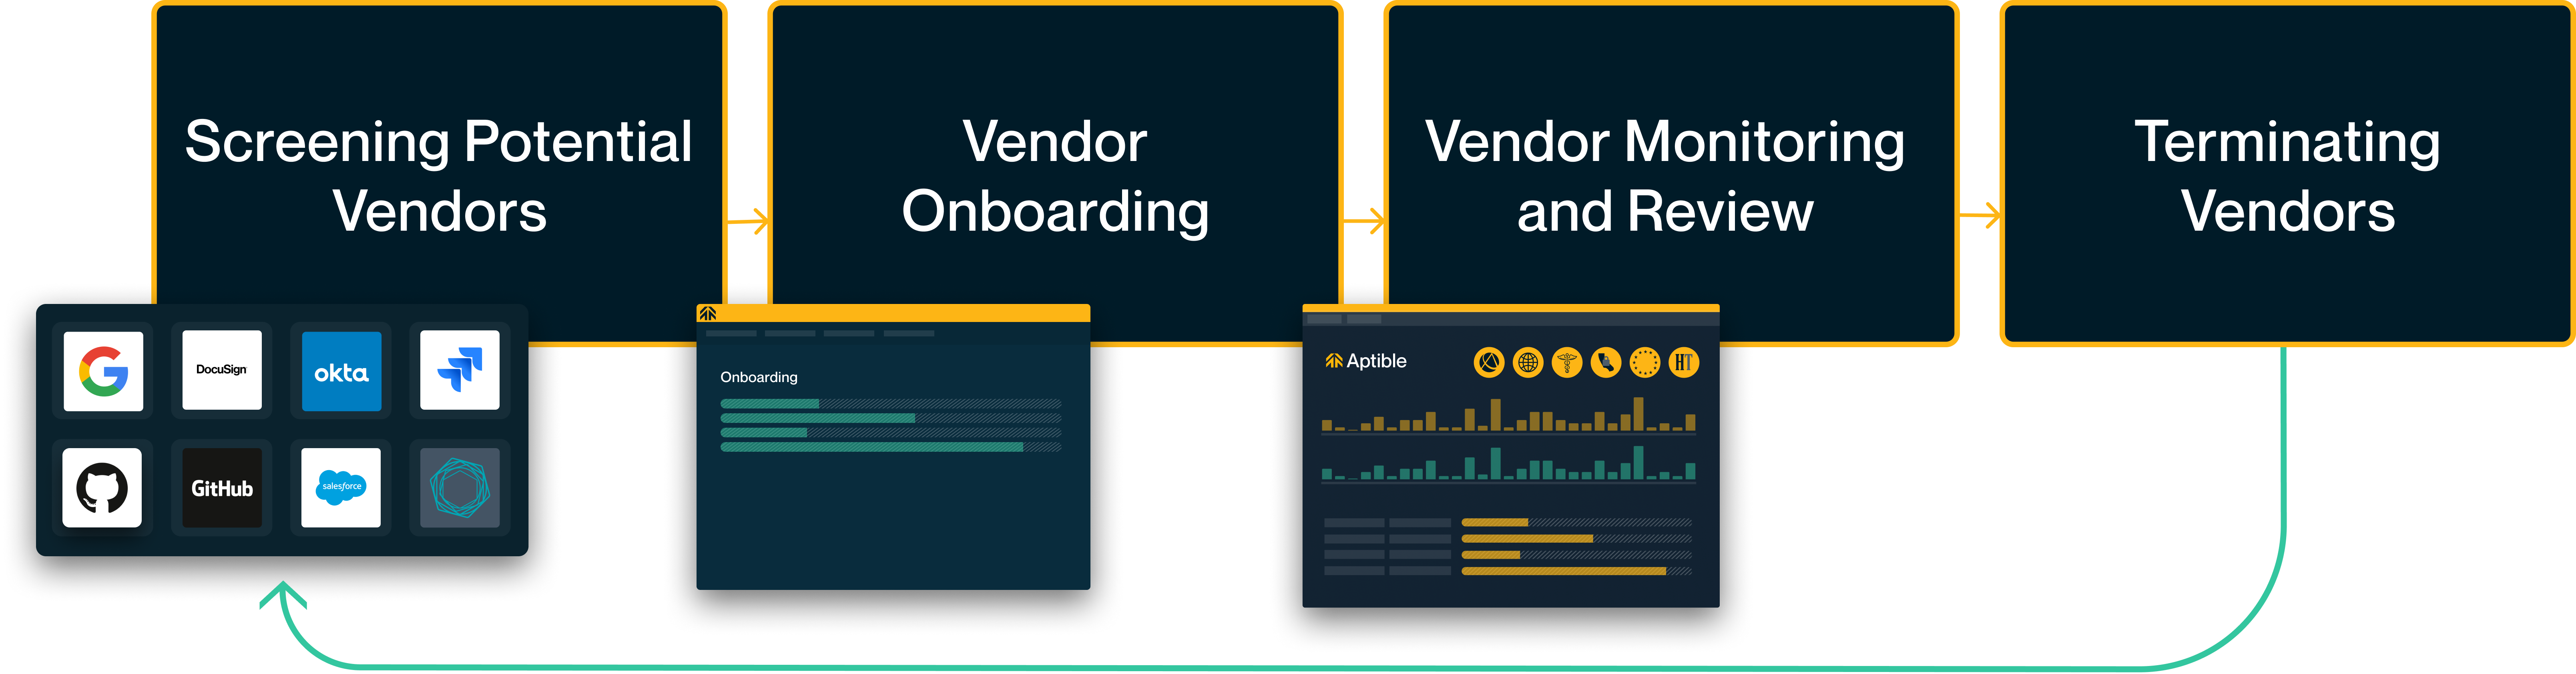 The vendor management lifecycle